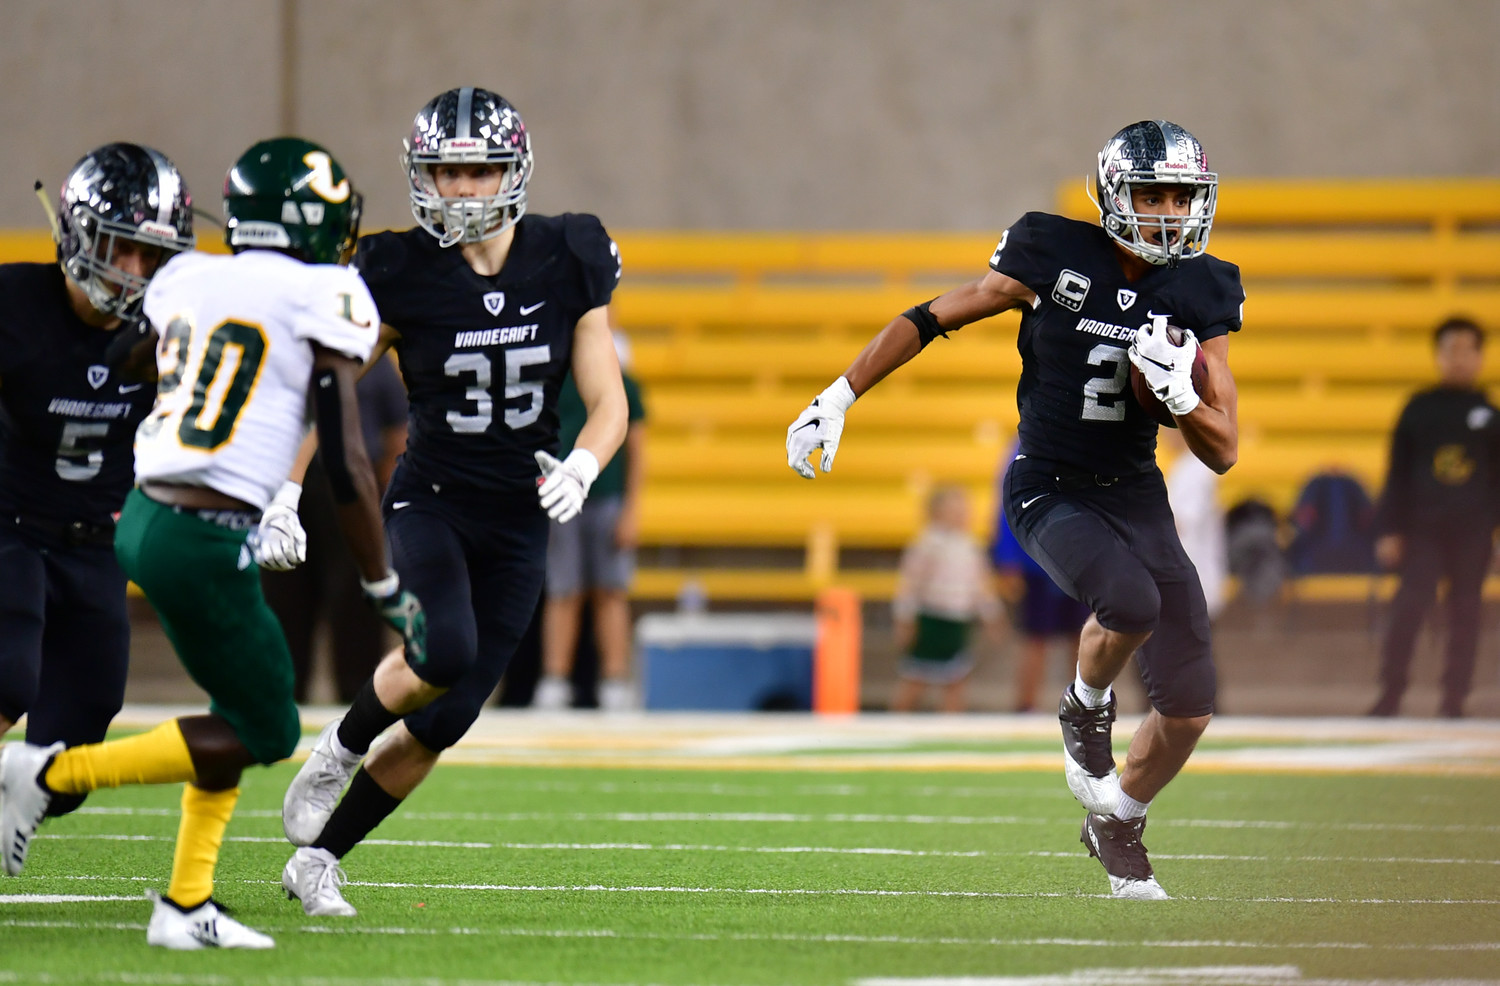 Reese Watson and Vandegrift fell to Longview 56-28 in the regional semifinals Saturday at McLane Stadium in Waco.